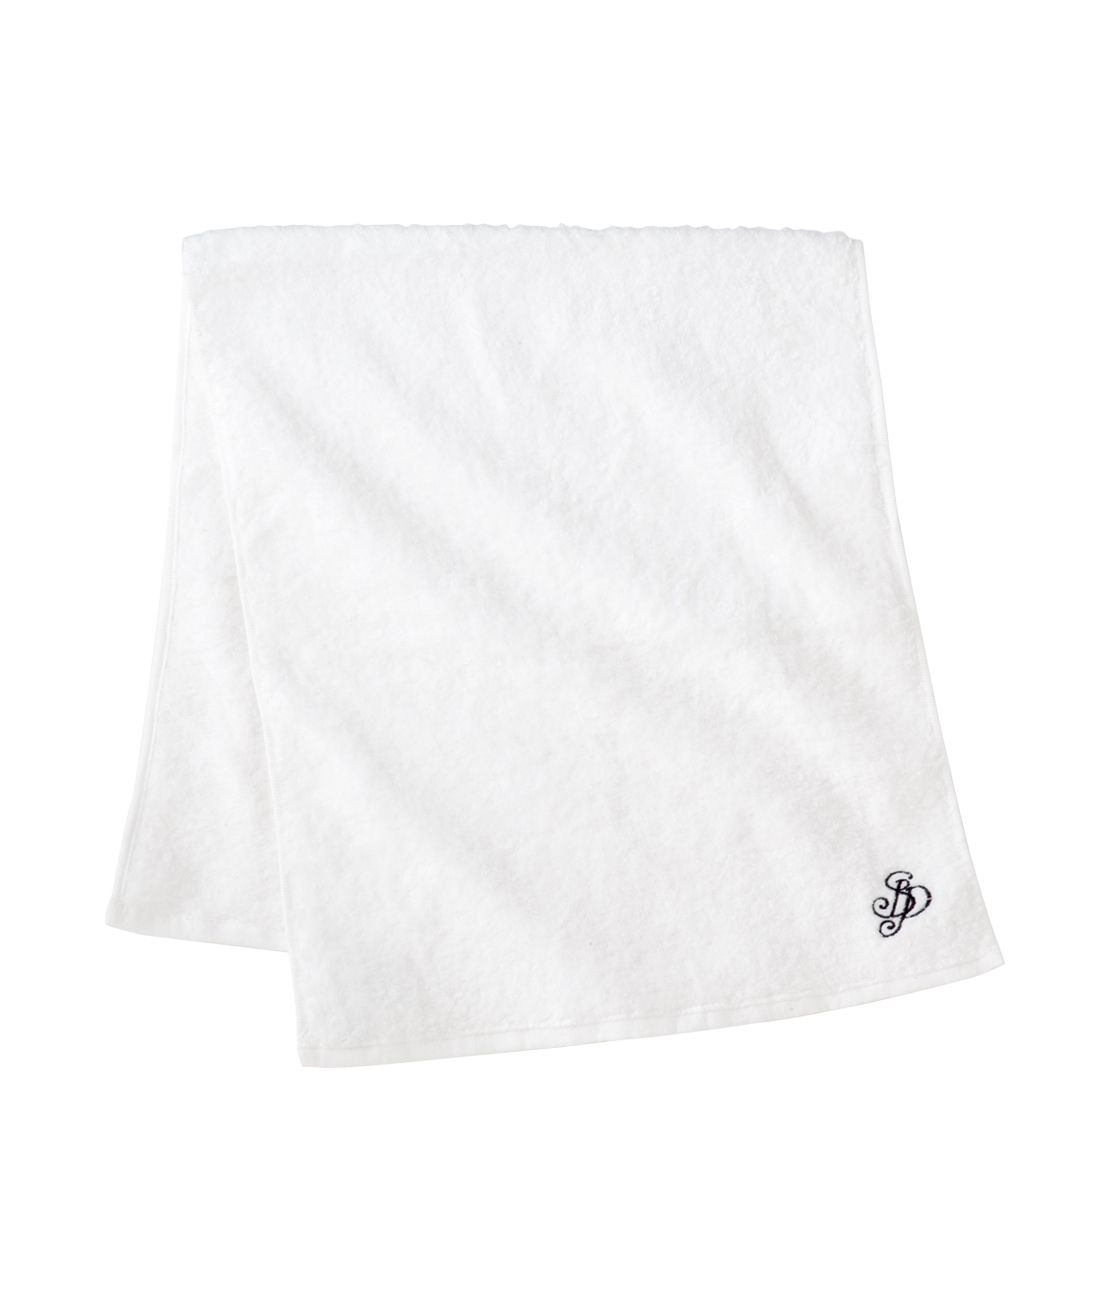 Embroidery Super marshmallow (R) towel